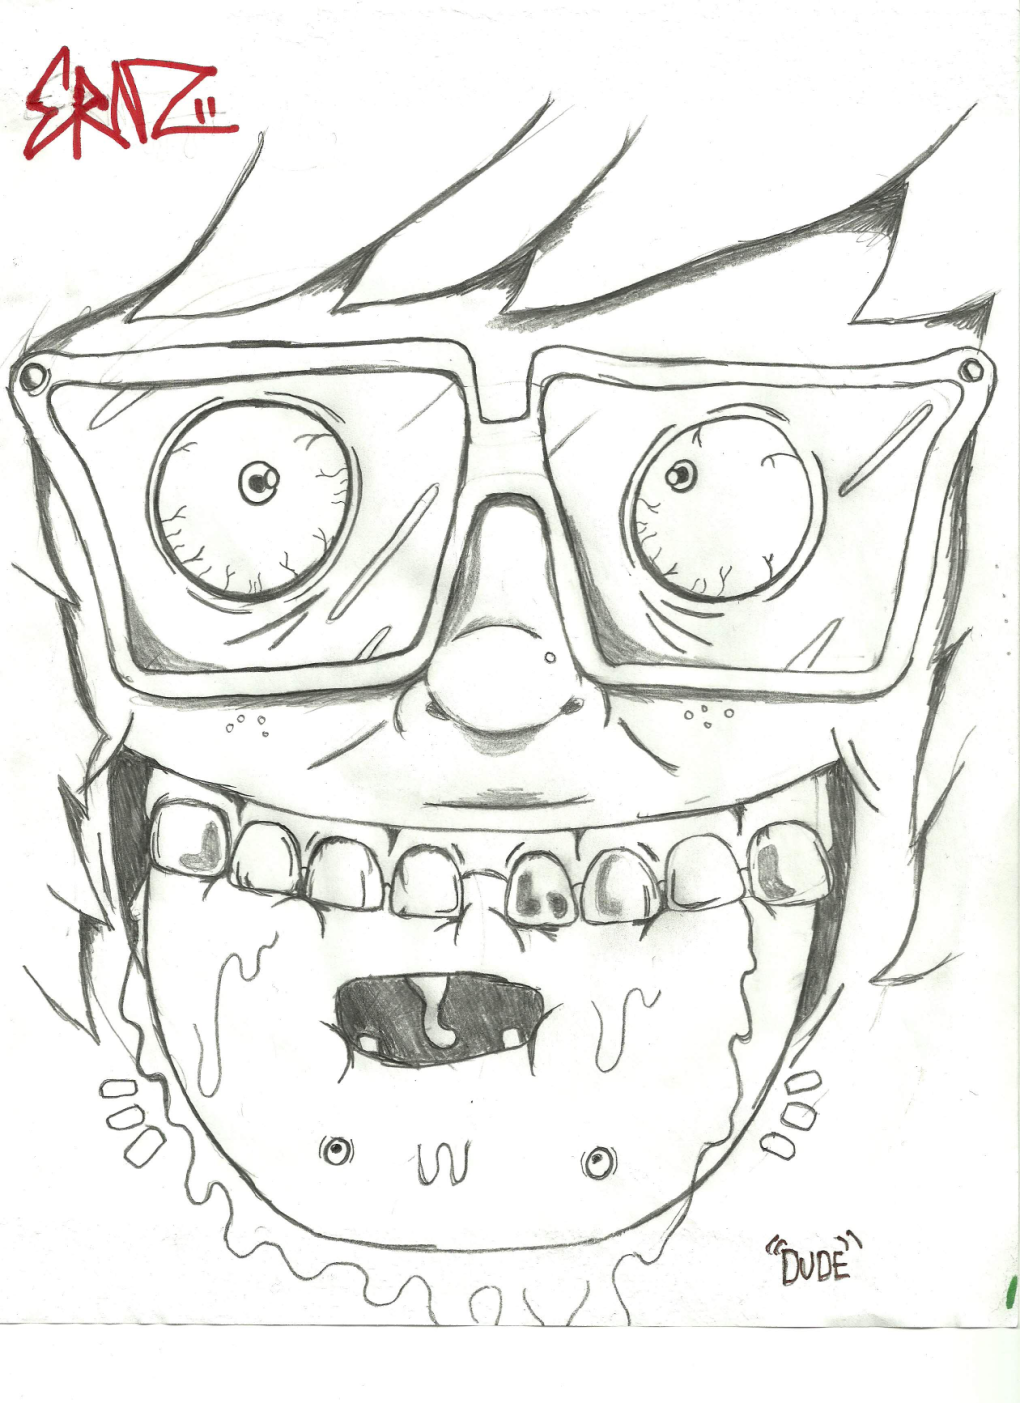 dude - some of my drawings :o